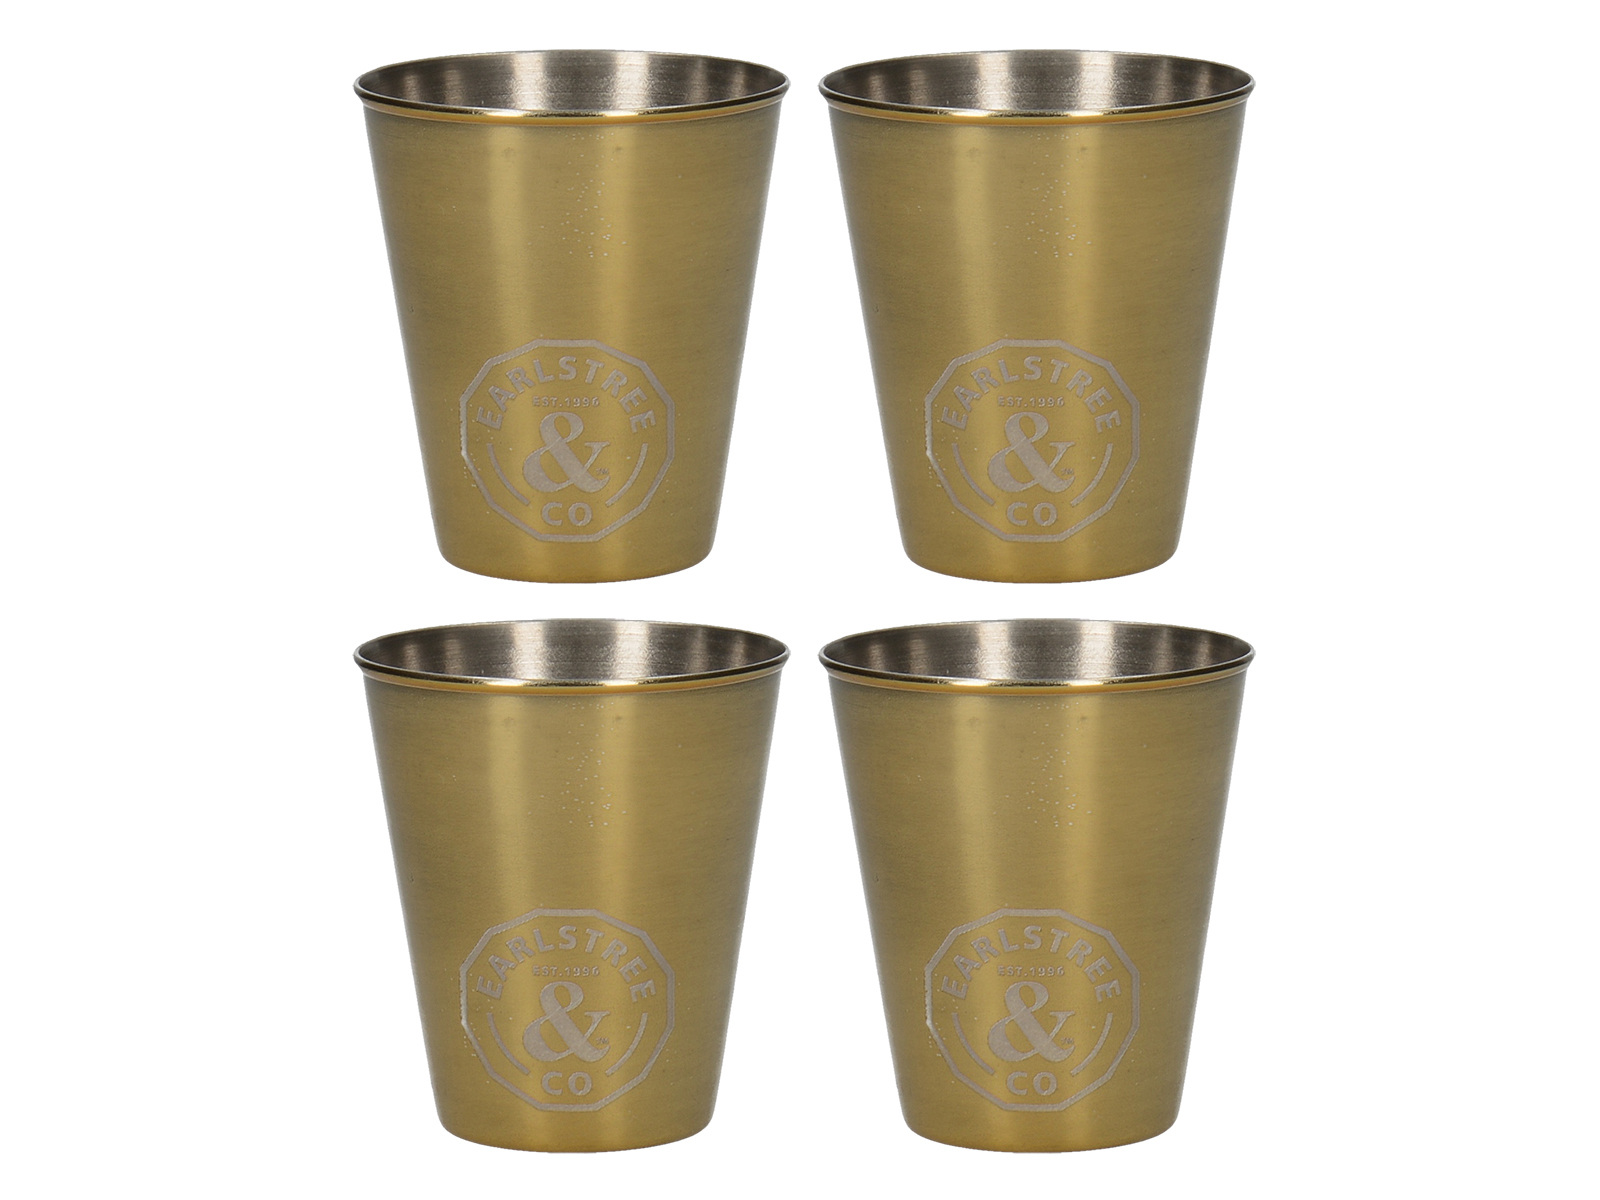 Creative Tops Earlstree & Co Set Of 4 Stainless Steel Shot Glasses